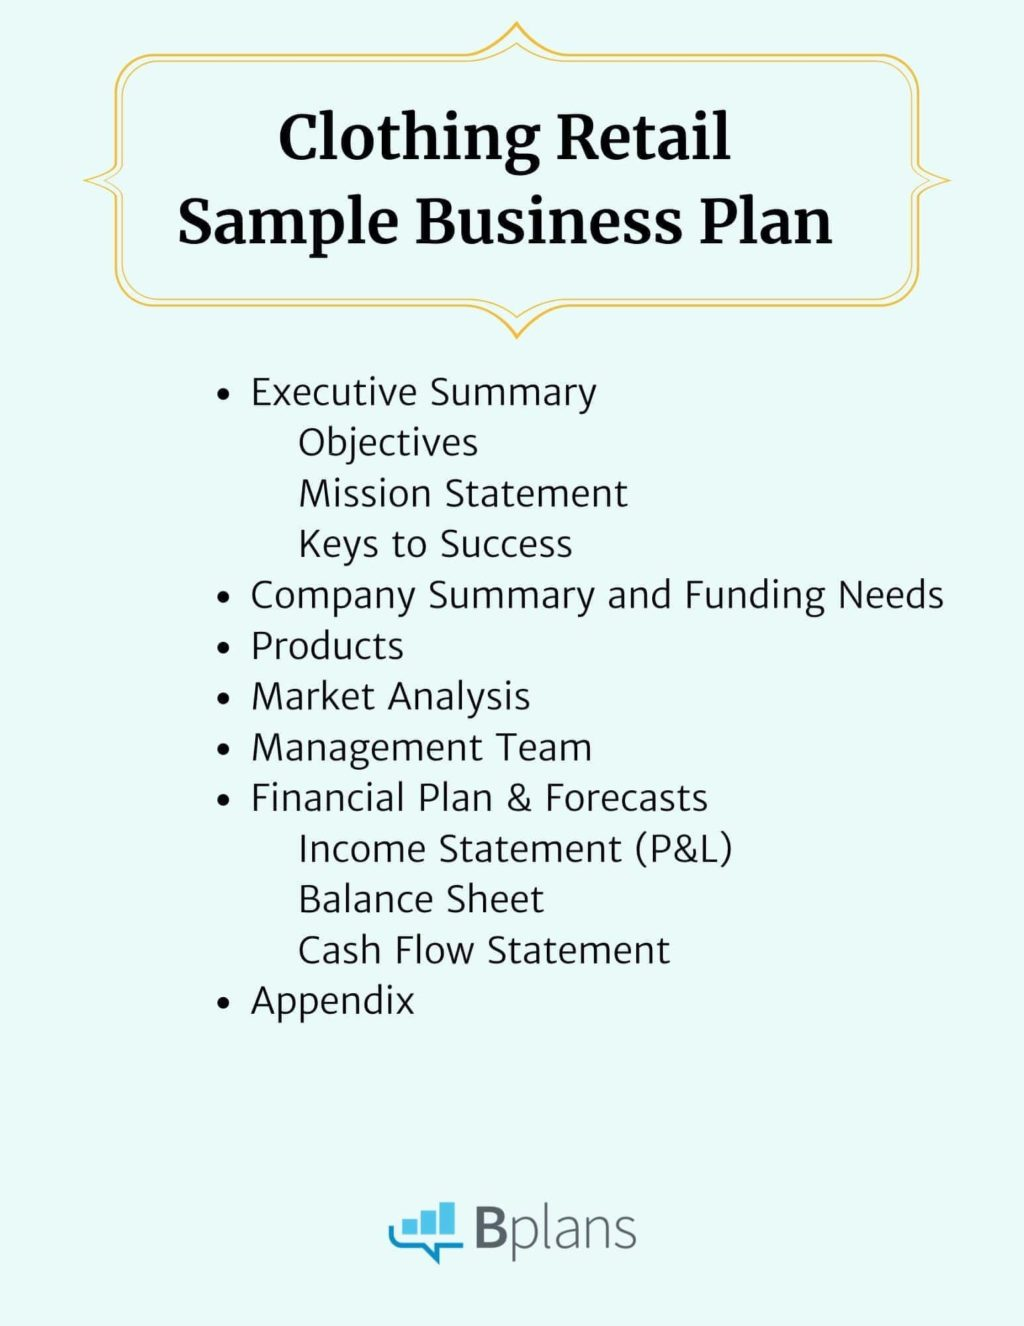 clothing retail sample business plan